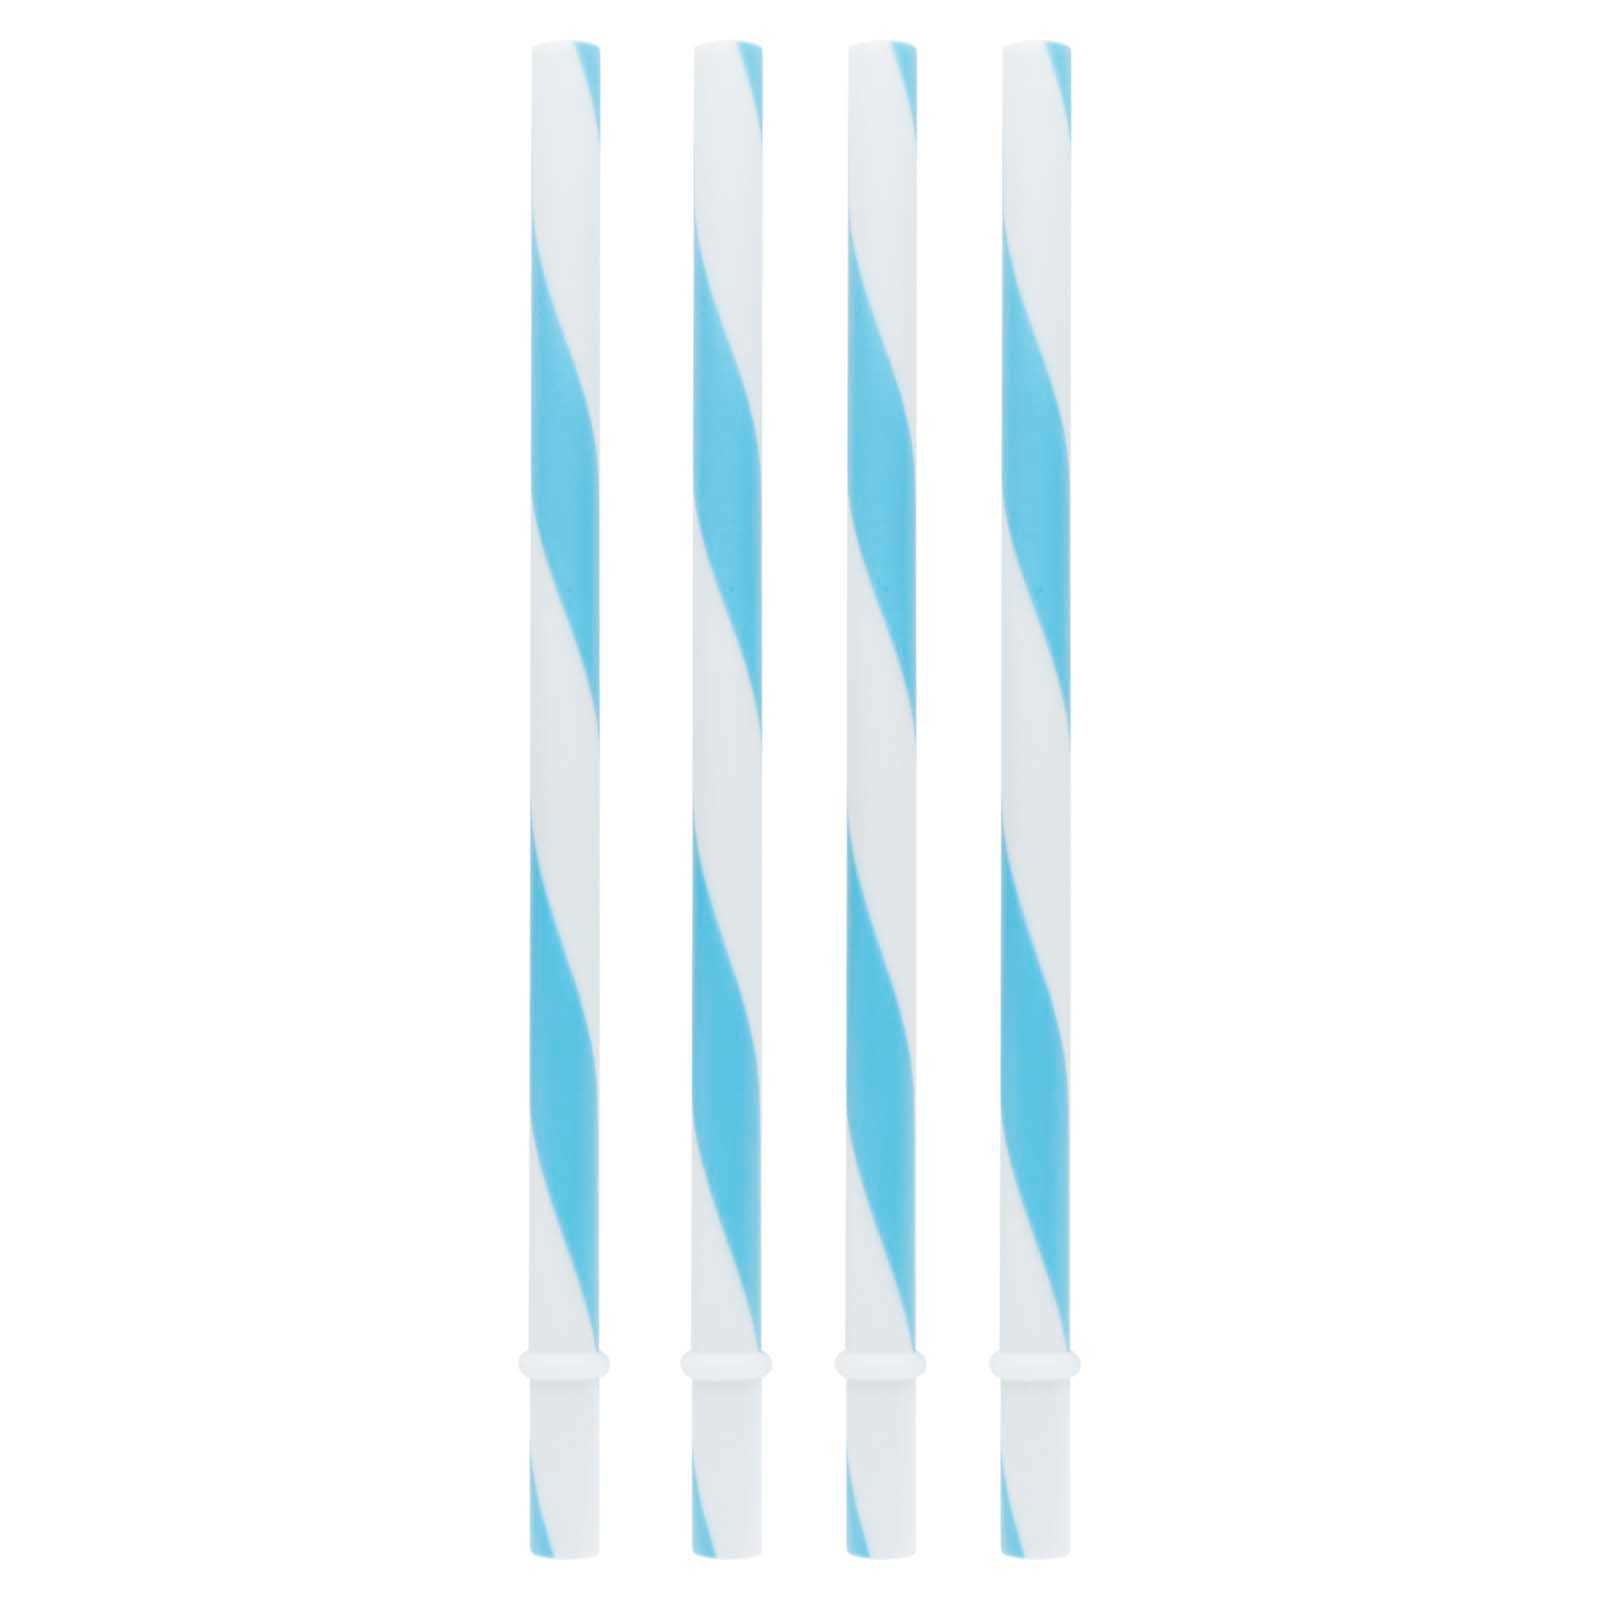 Replacement Straws for 13 oz Tumblers and Mason Jar Tumblers (4-Pack)